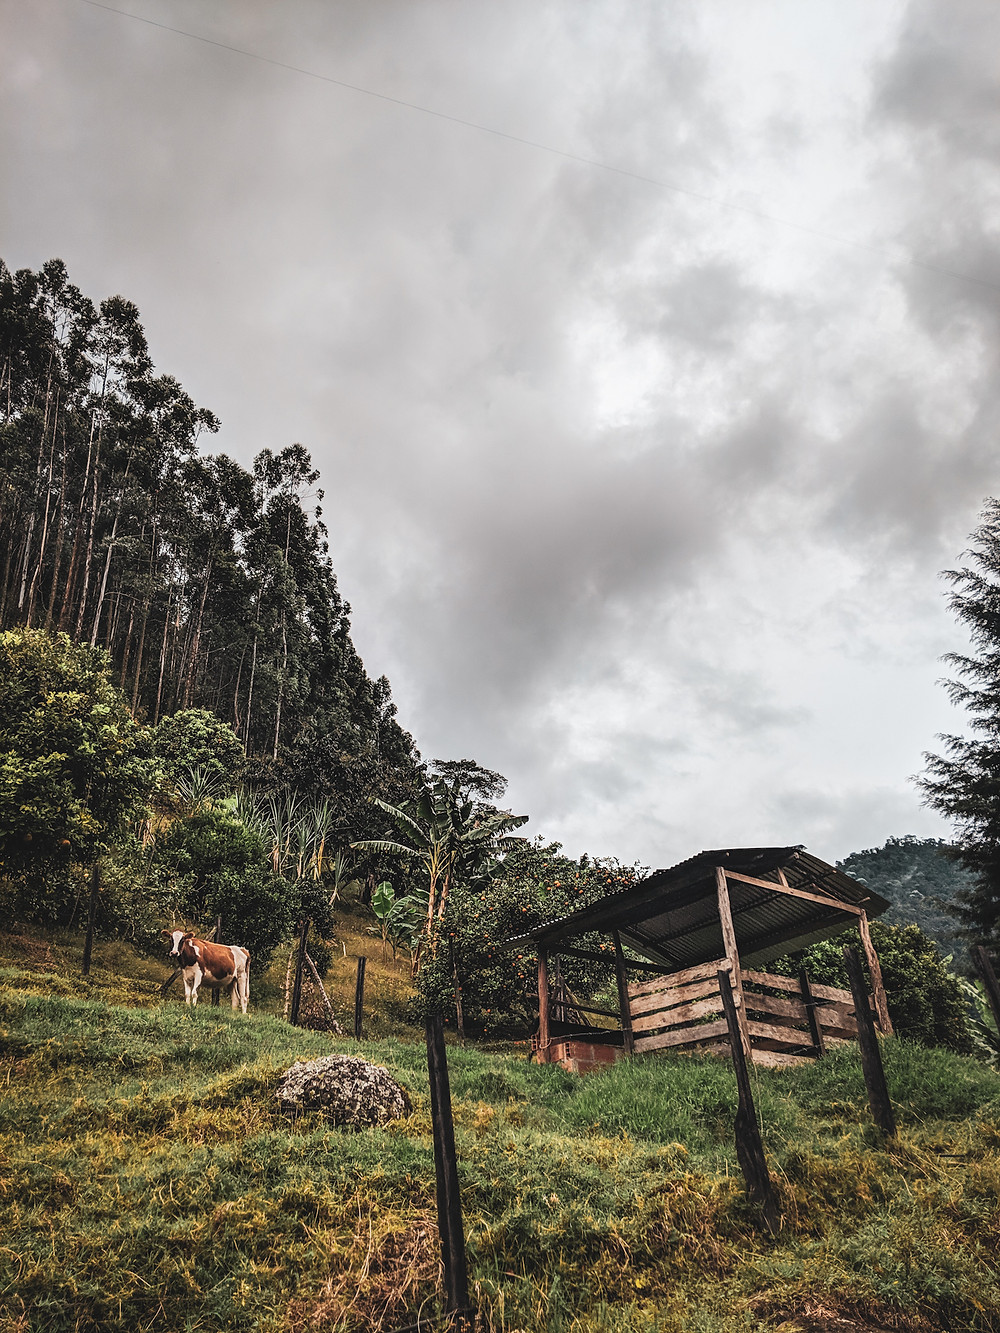 Cows and mountain views on a hike in Jardin, Colombia.